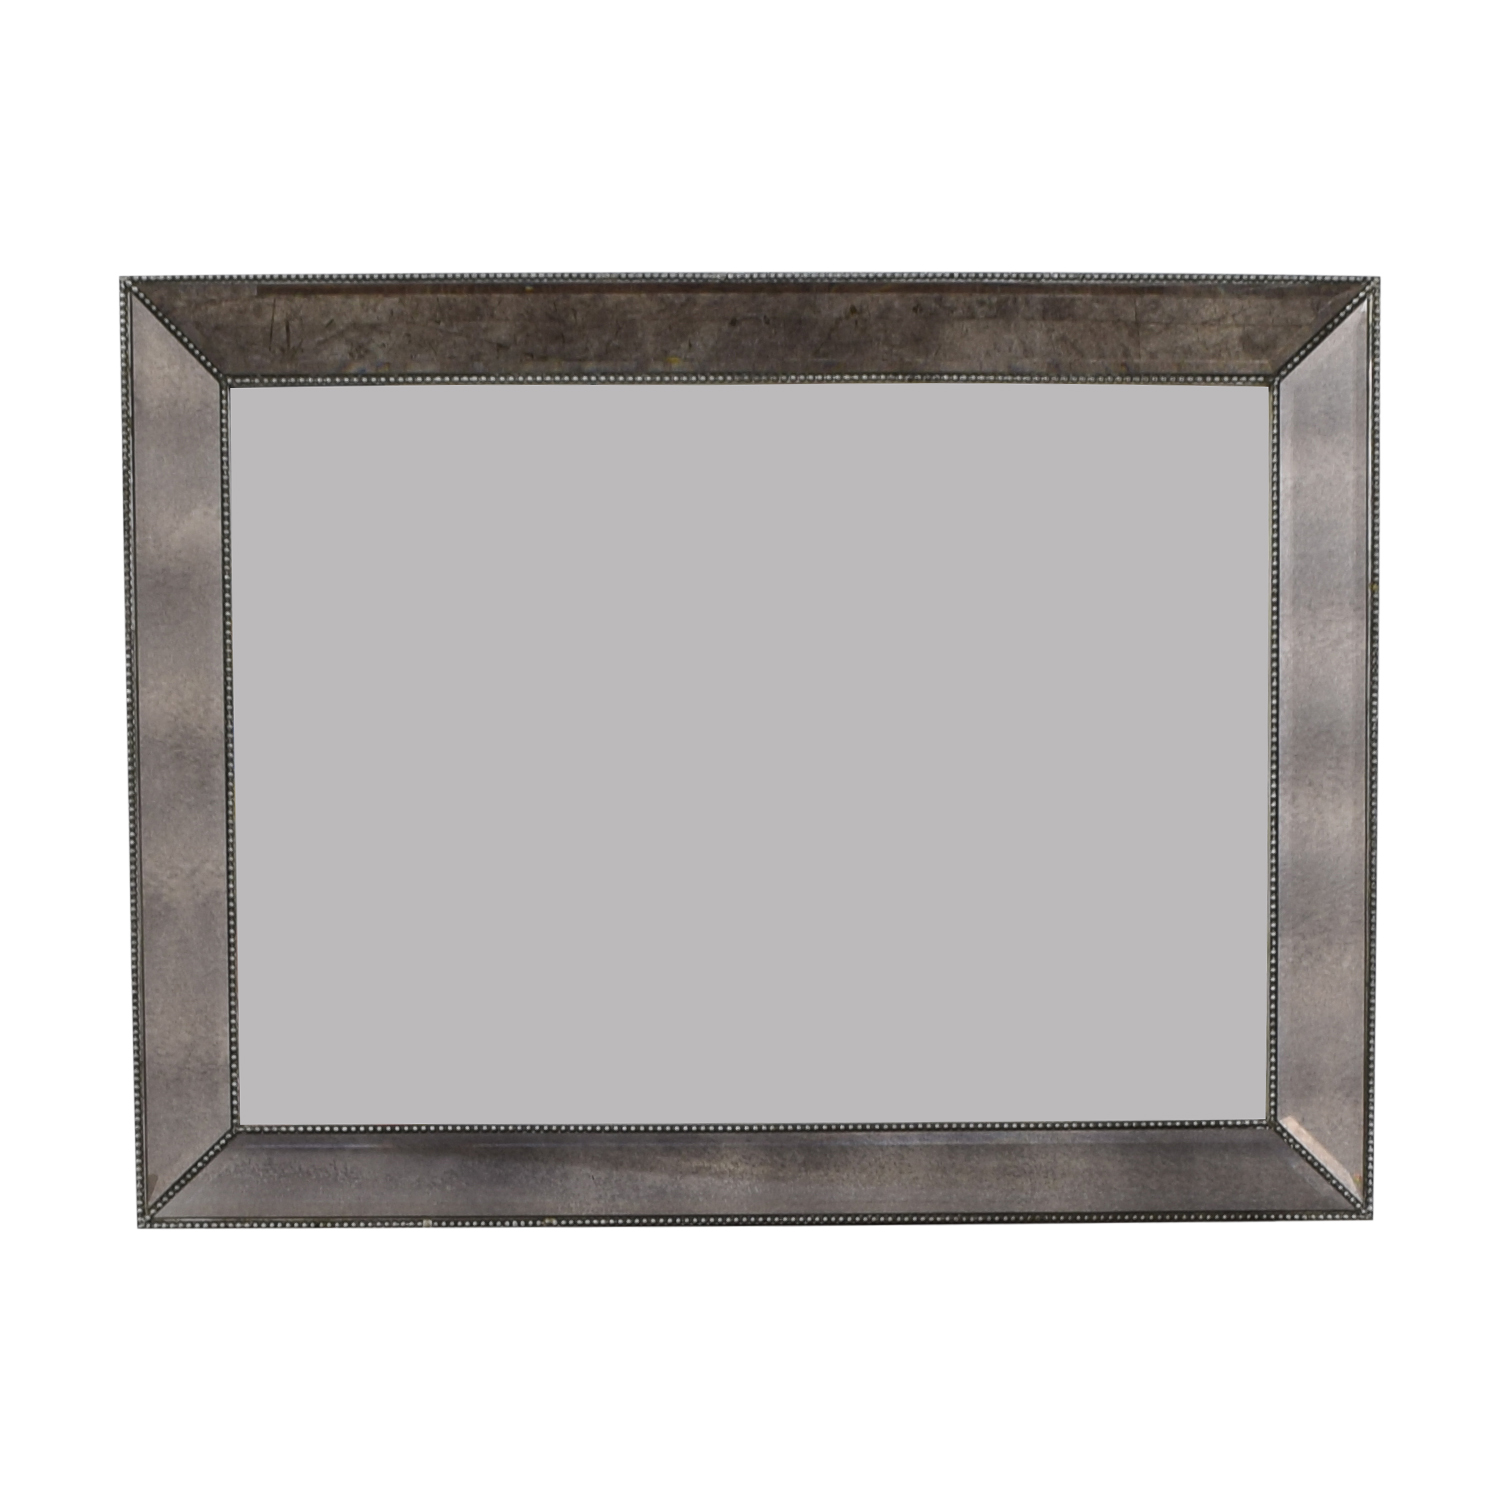 Beveled Framed Mirror Decor